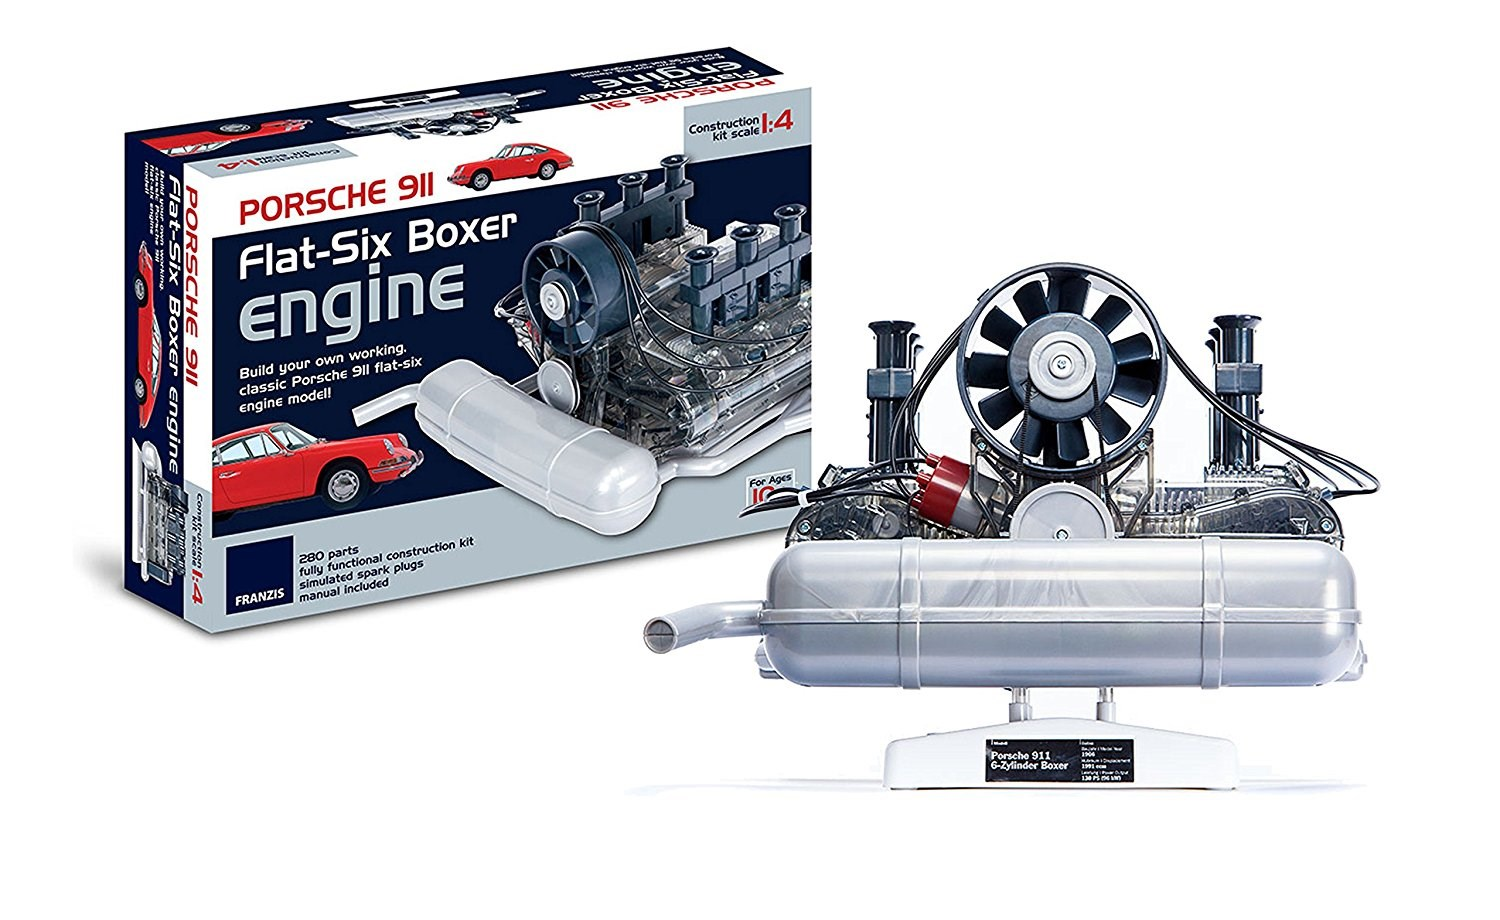 how a porsche 911 flat six boxer engine works toy scale model by rh carmagazine co uk